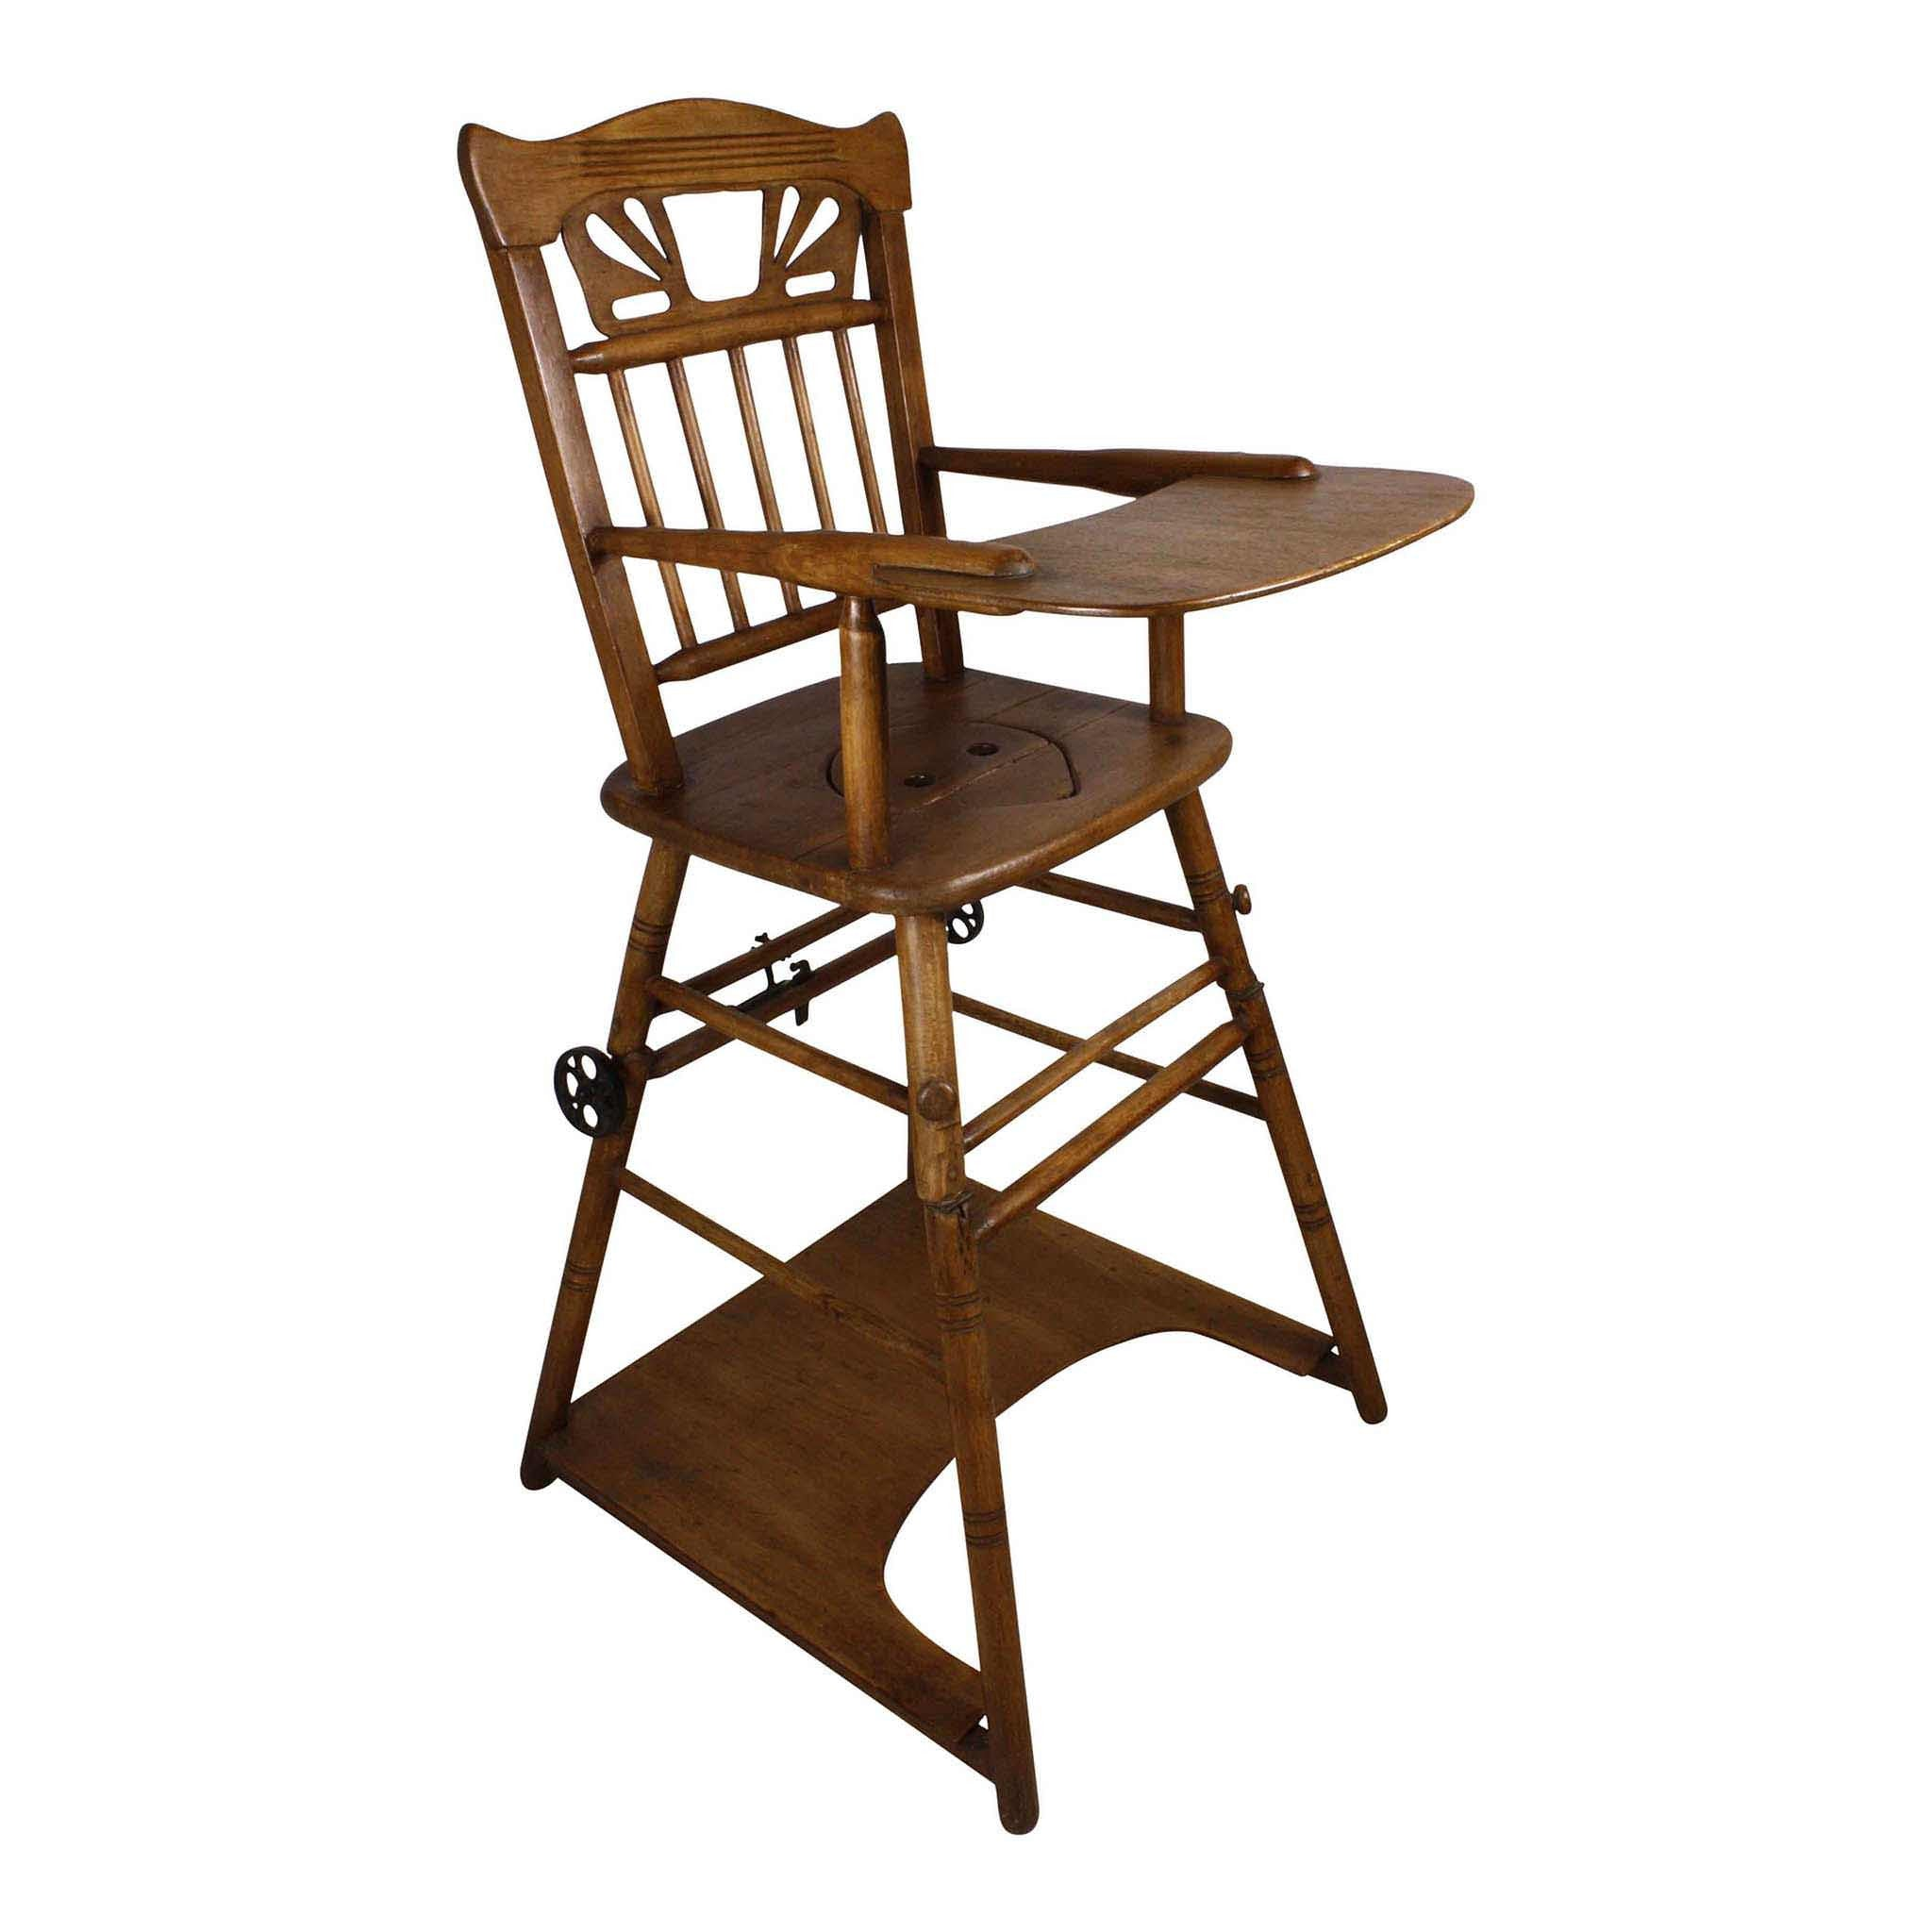 Arts and Crafts High Chair